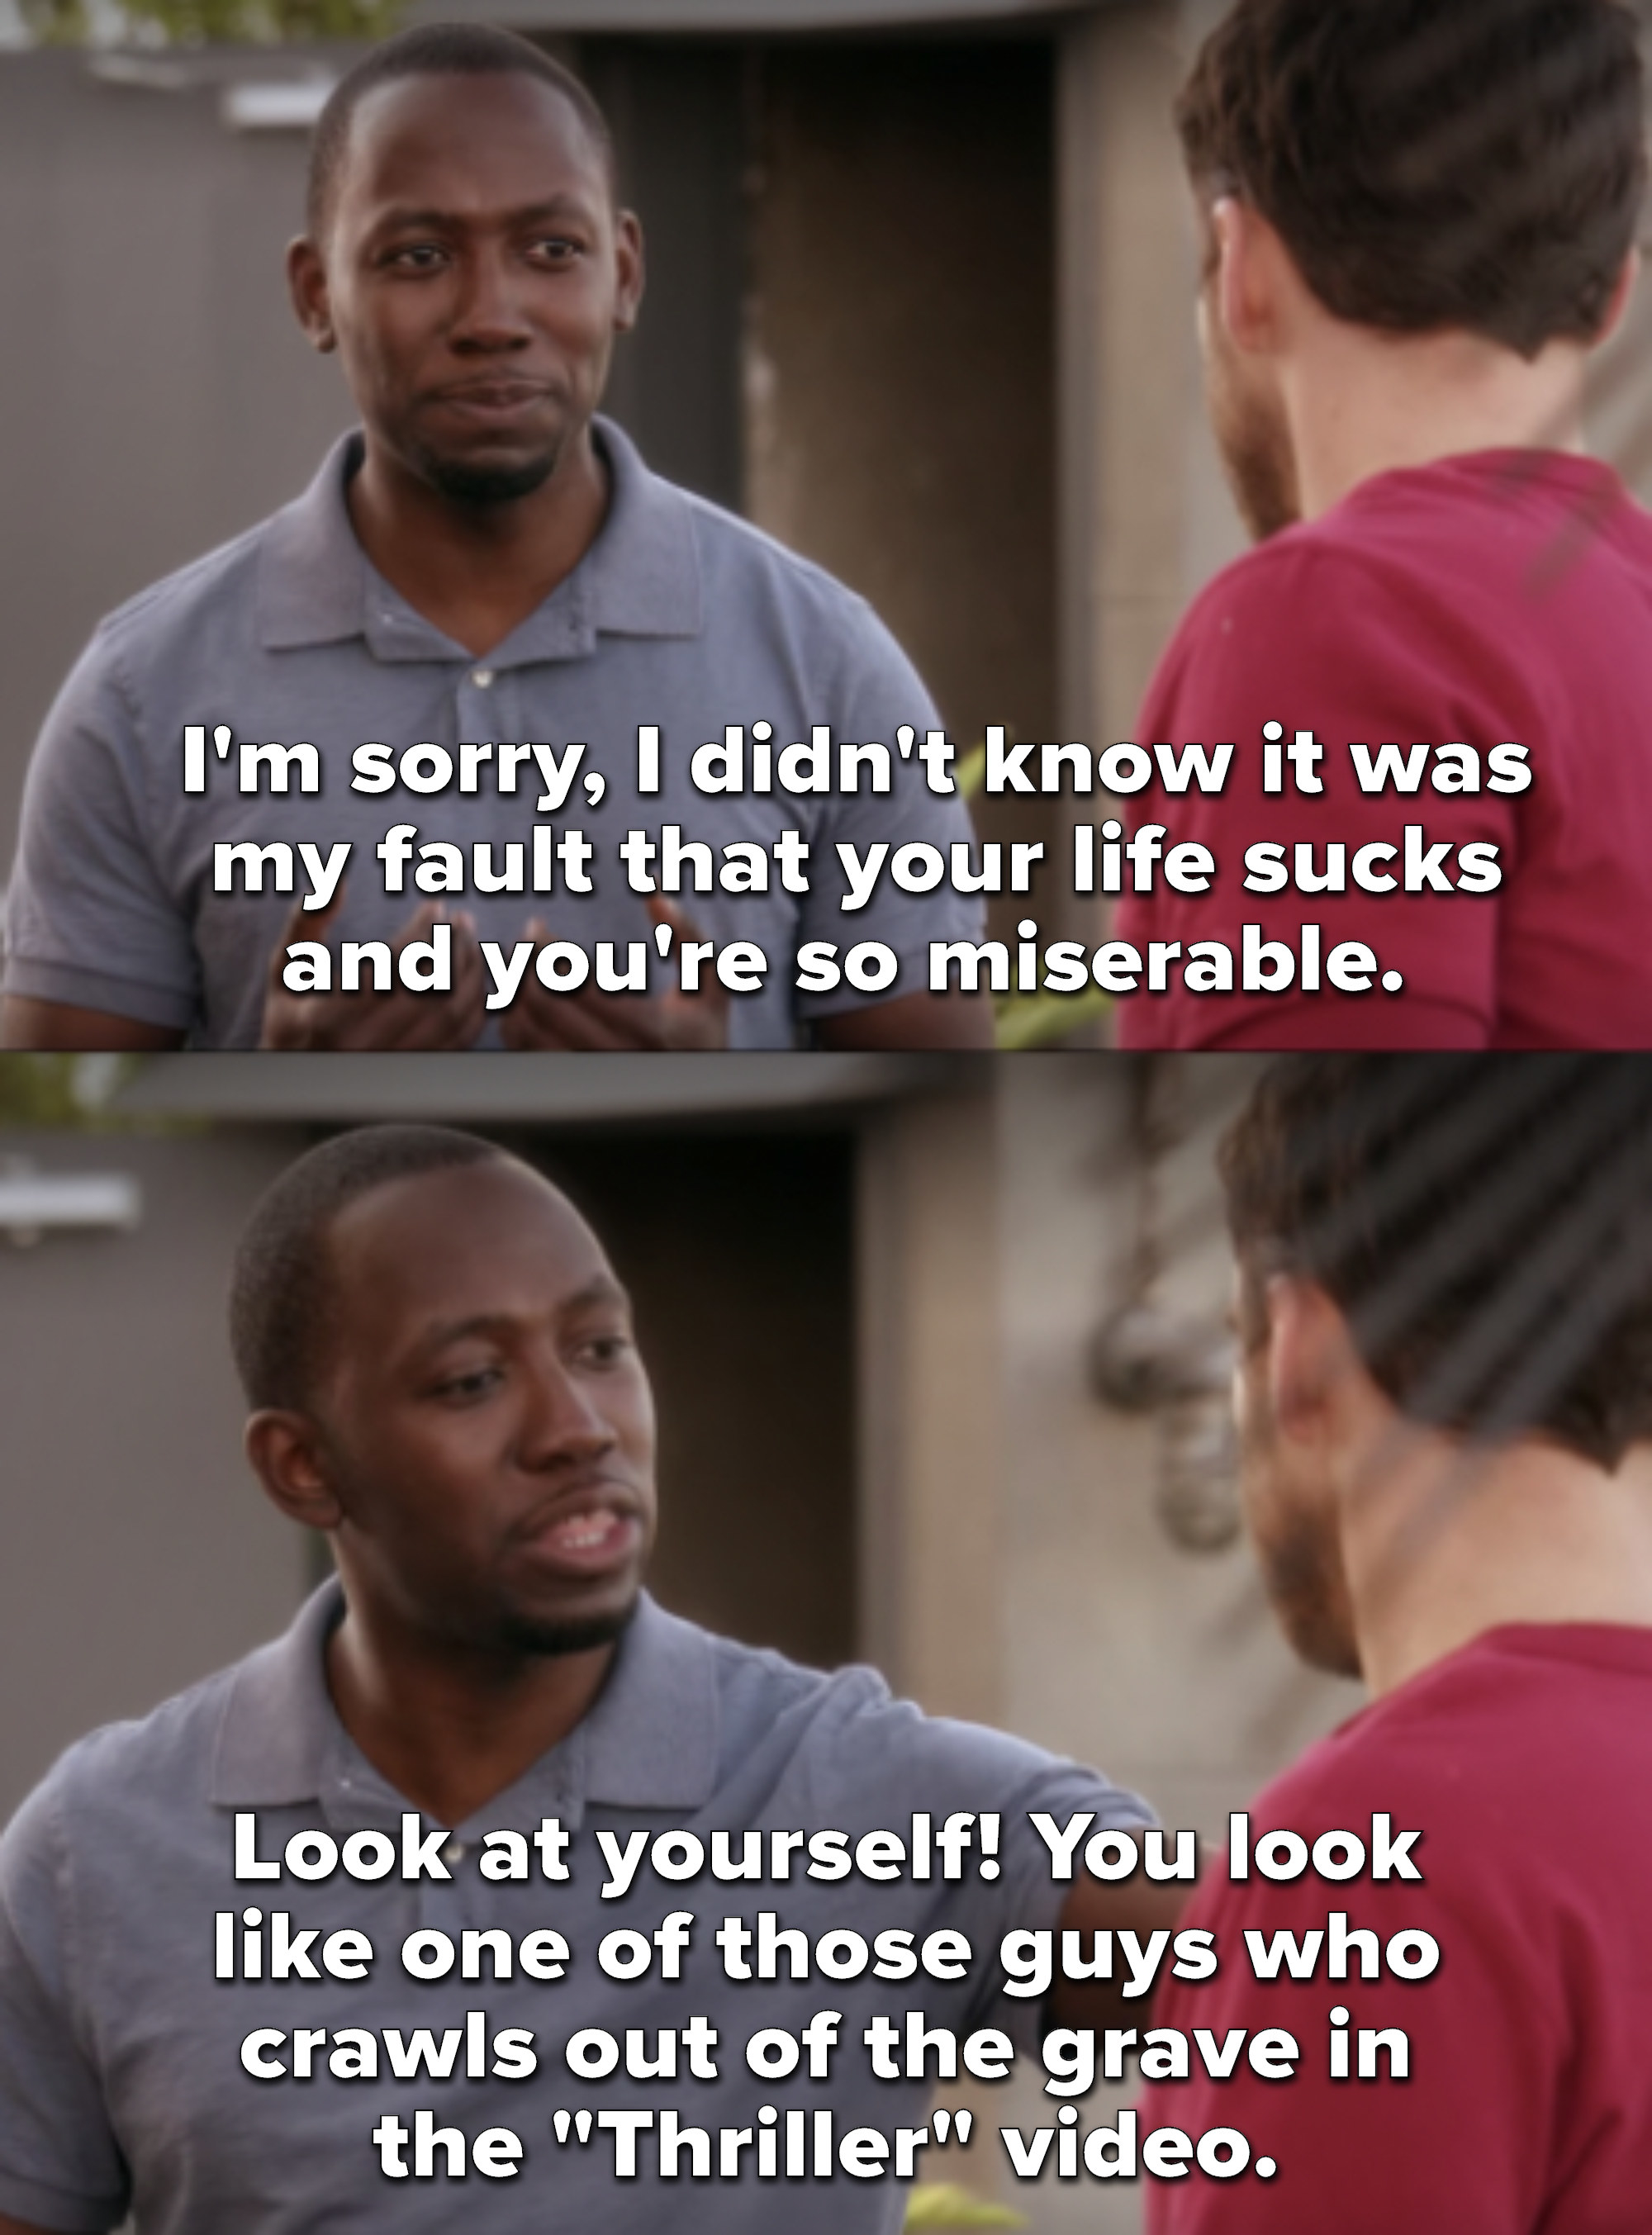 """""""I'm sorry, I didn't know it was my fault that your life sucks and you're so miserable. Look at yourself! You look like one of those guys who crawls out of the grave in the Thriller video"""""""